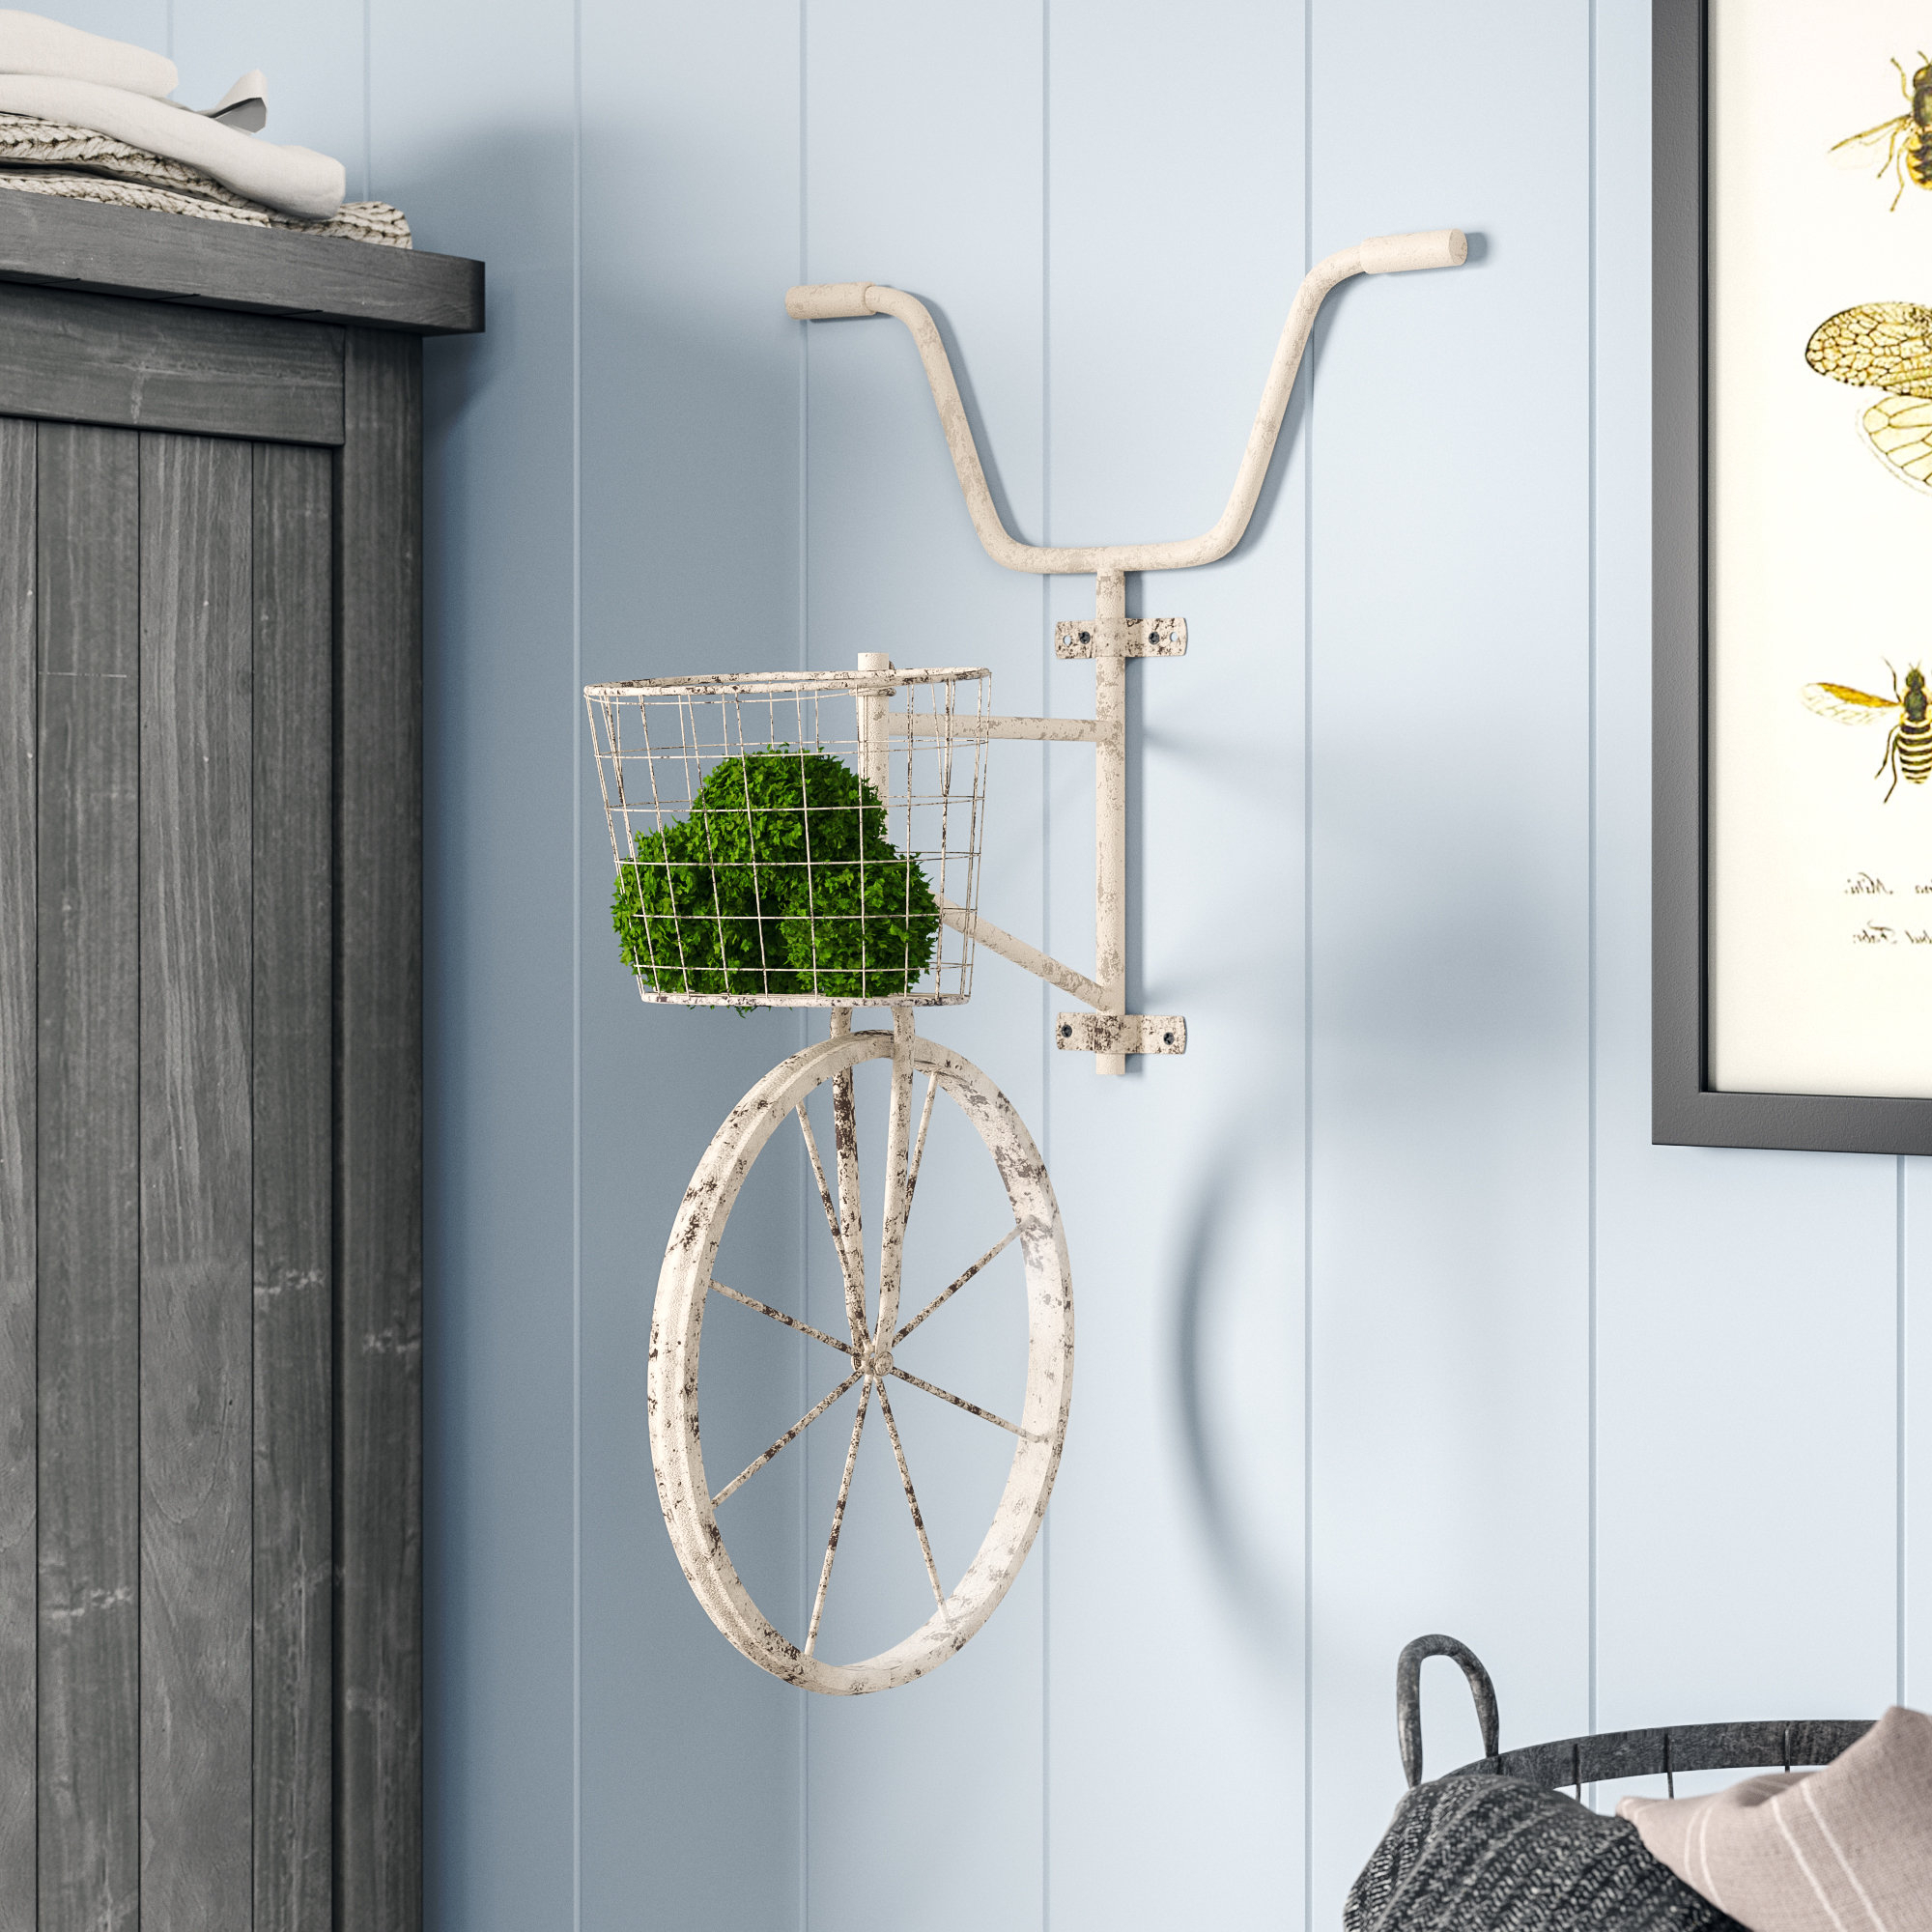 Most Recently Released Metal Bicycle Wall Decor Inside August Grove Metal Bicycle Wall Décor & Reviews (View 15 of 20)